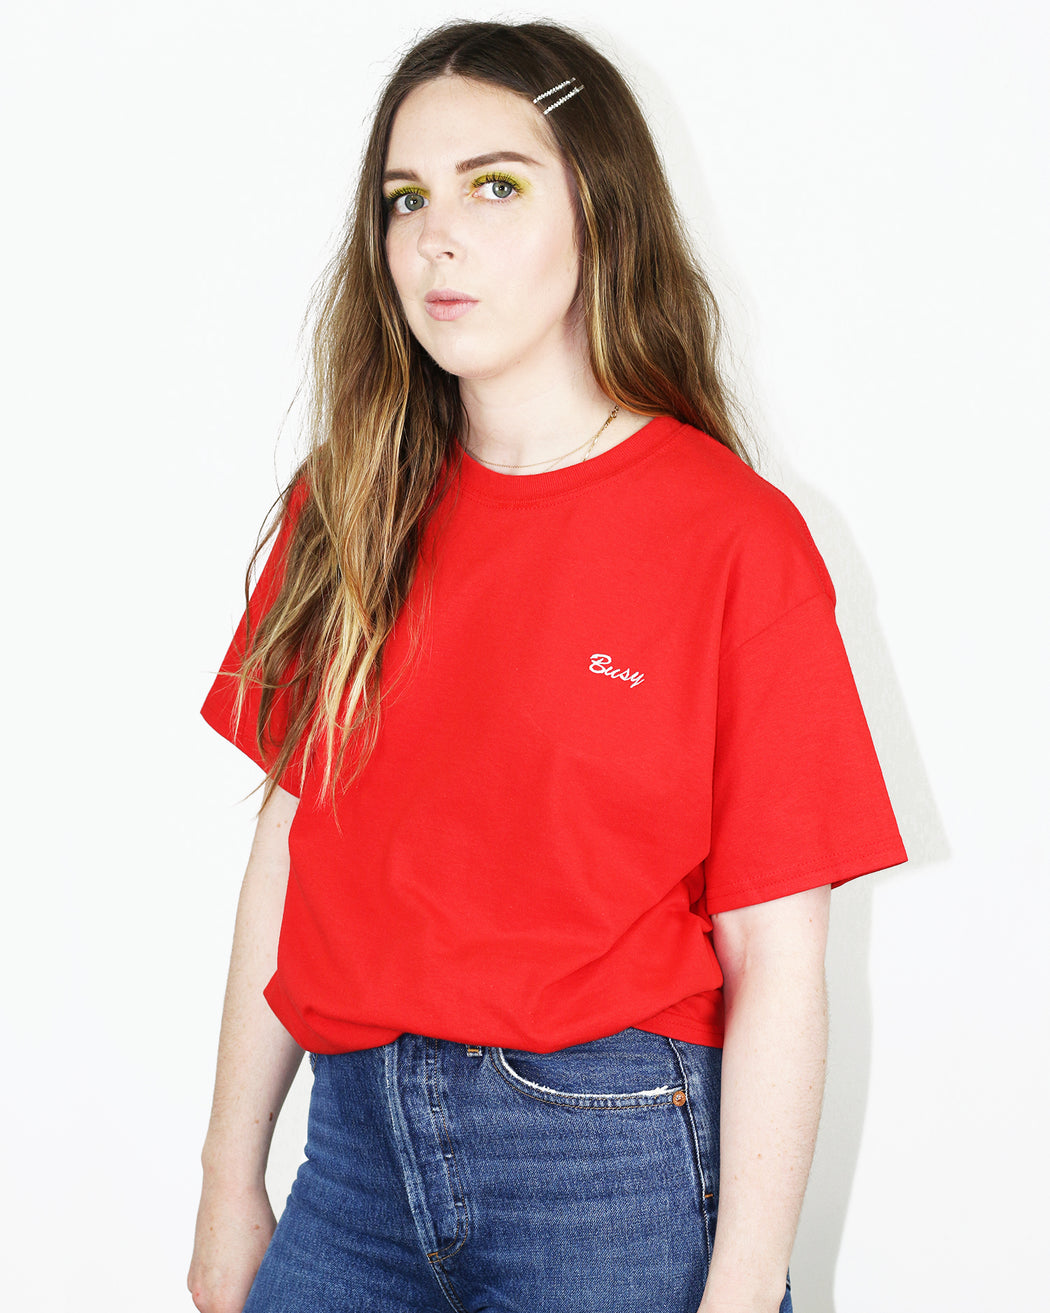 Double Trouble Gang:Busy Tee – White on Red Embroidery,ANOMIE